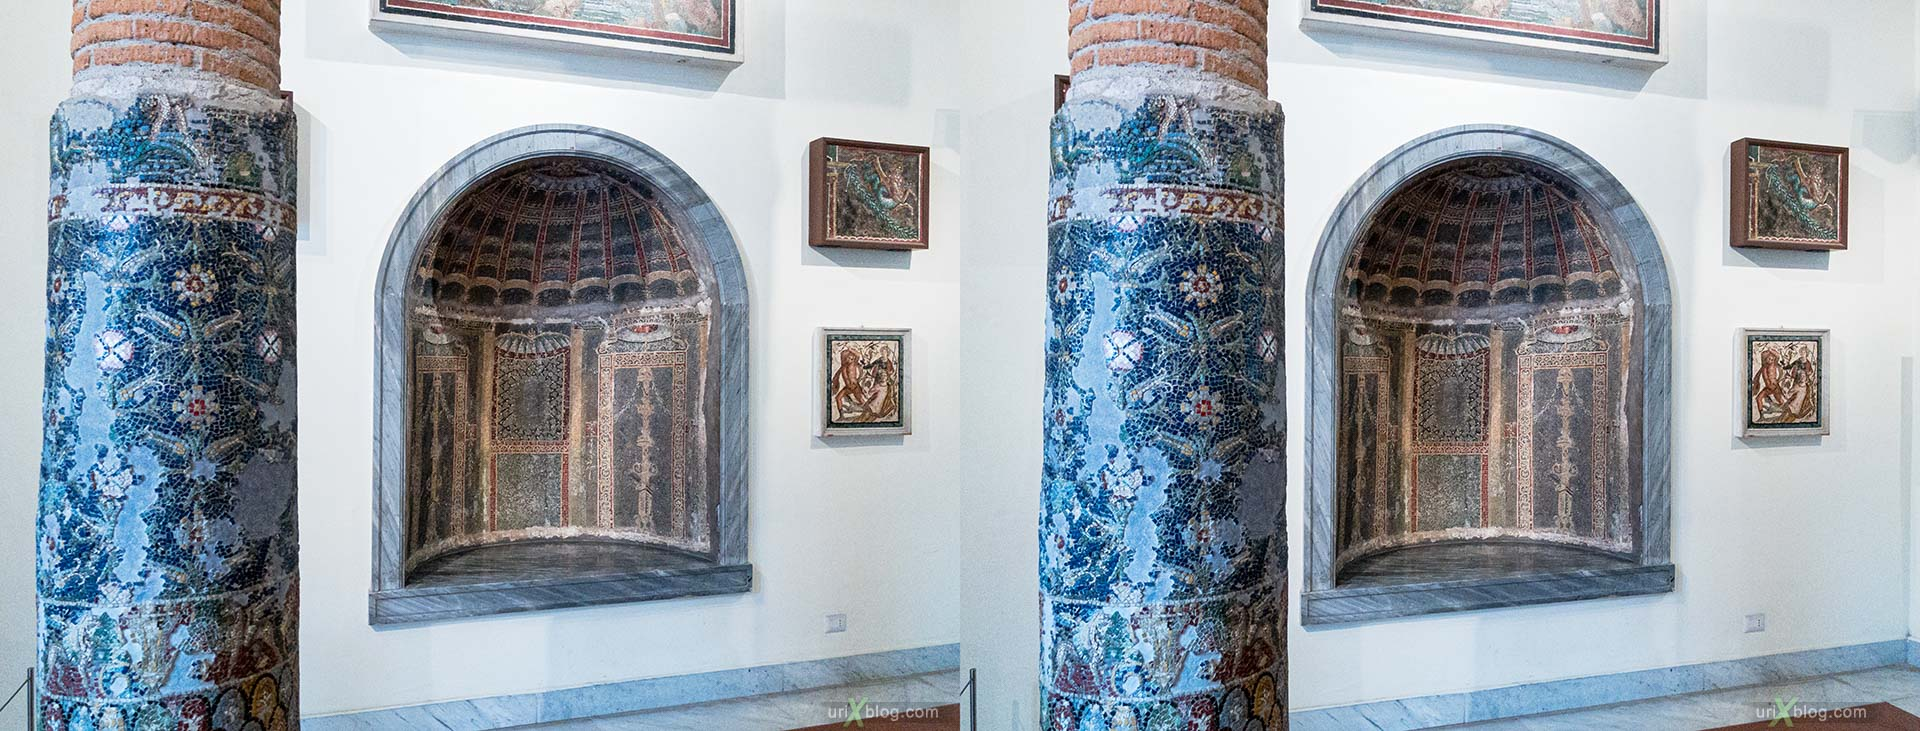 mosaics, National Archaeological Museum of Naples, ancient Rome, Pompei, exhibition, Naples, Italy, 3D, stereo pair, cross-eyed, crossview, cross view stereo pair, stereoscopic